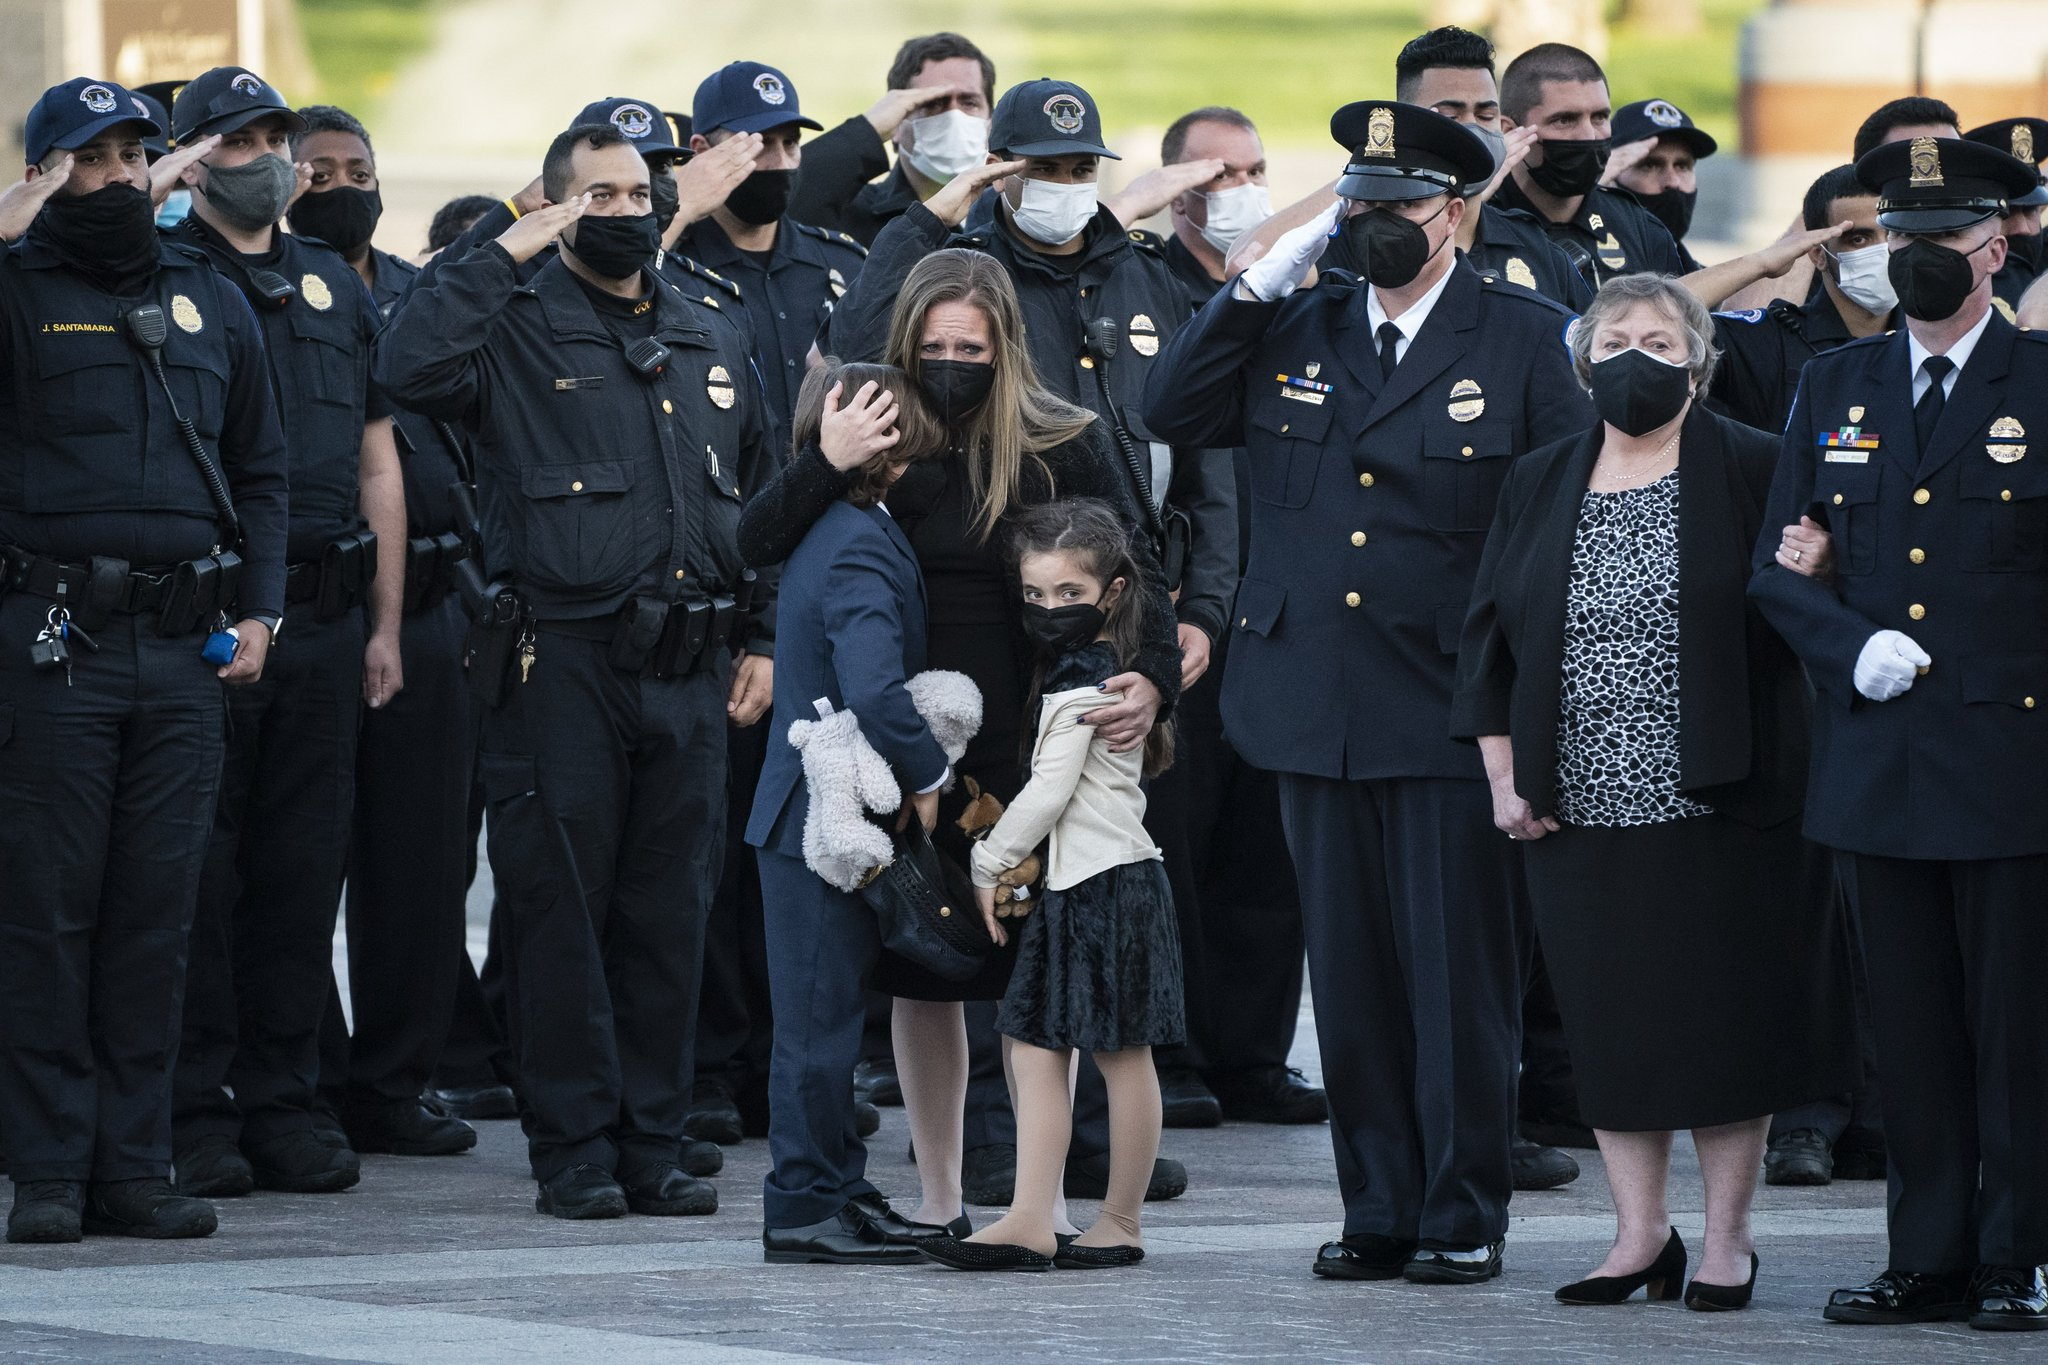 Officer Evans' wife and son and daughter oversee the memorial service.  AP = Yonhop News